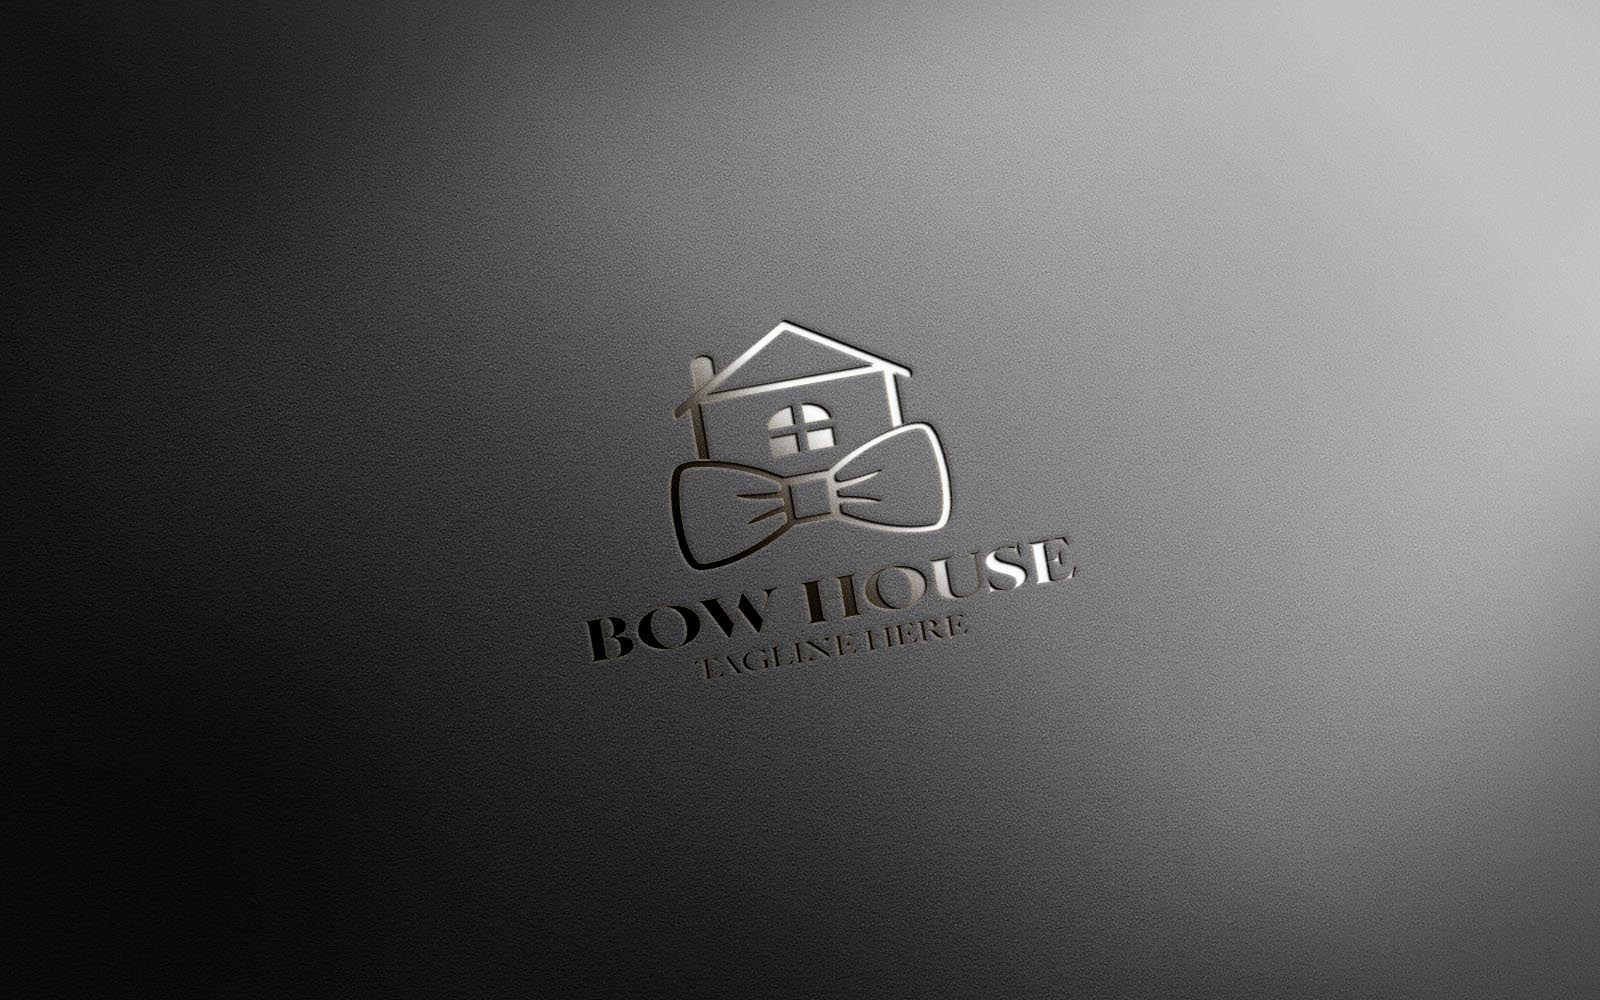 BOW HOUSE REAL ESTATE LUXURY LOGO CONCEPT